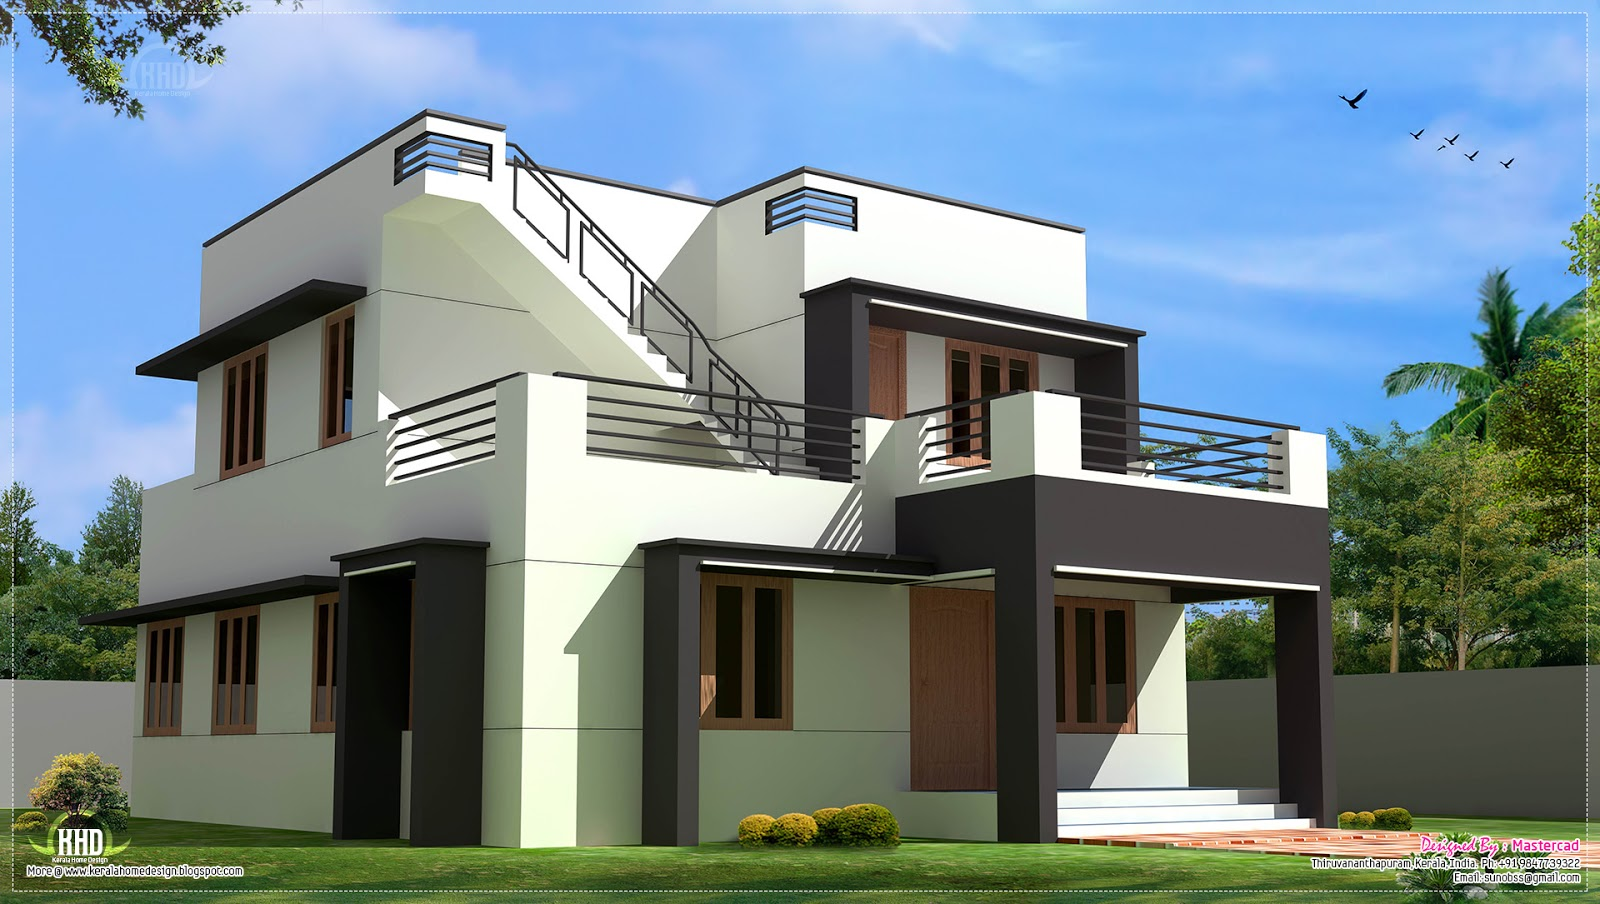 New home design Modern square house